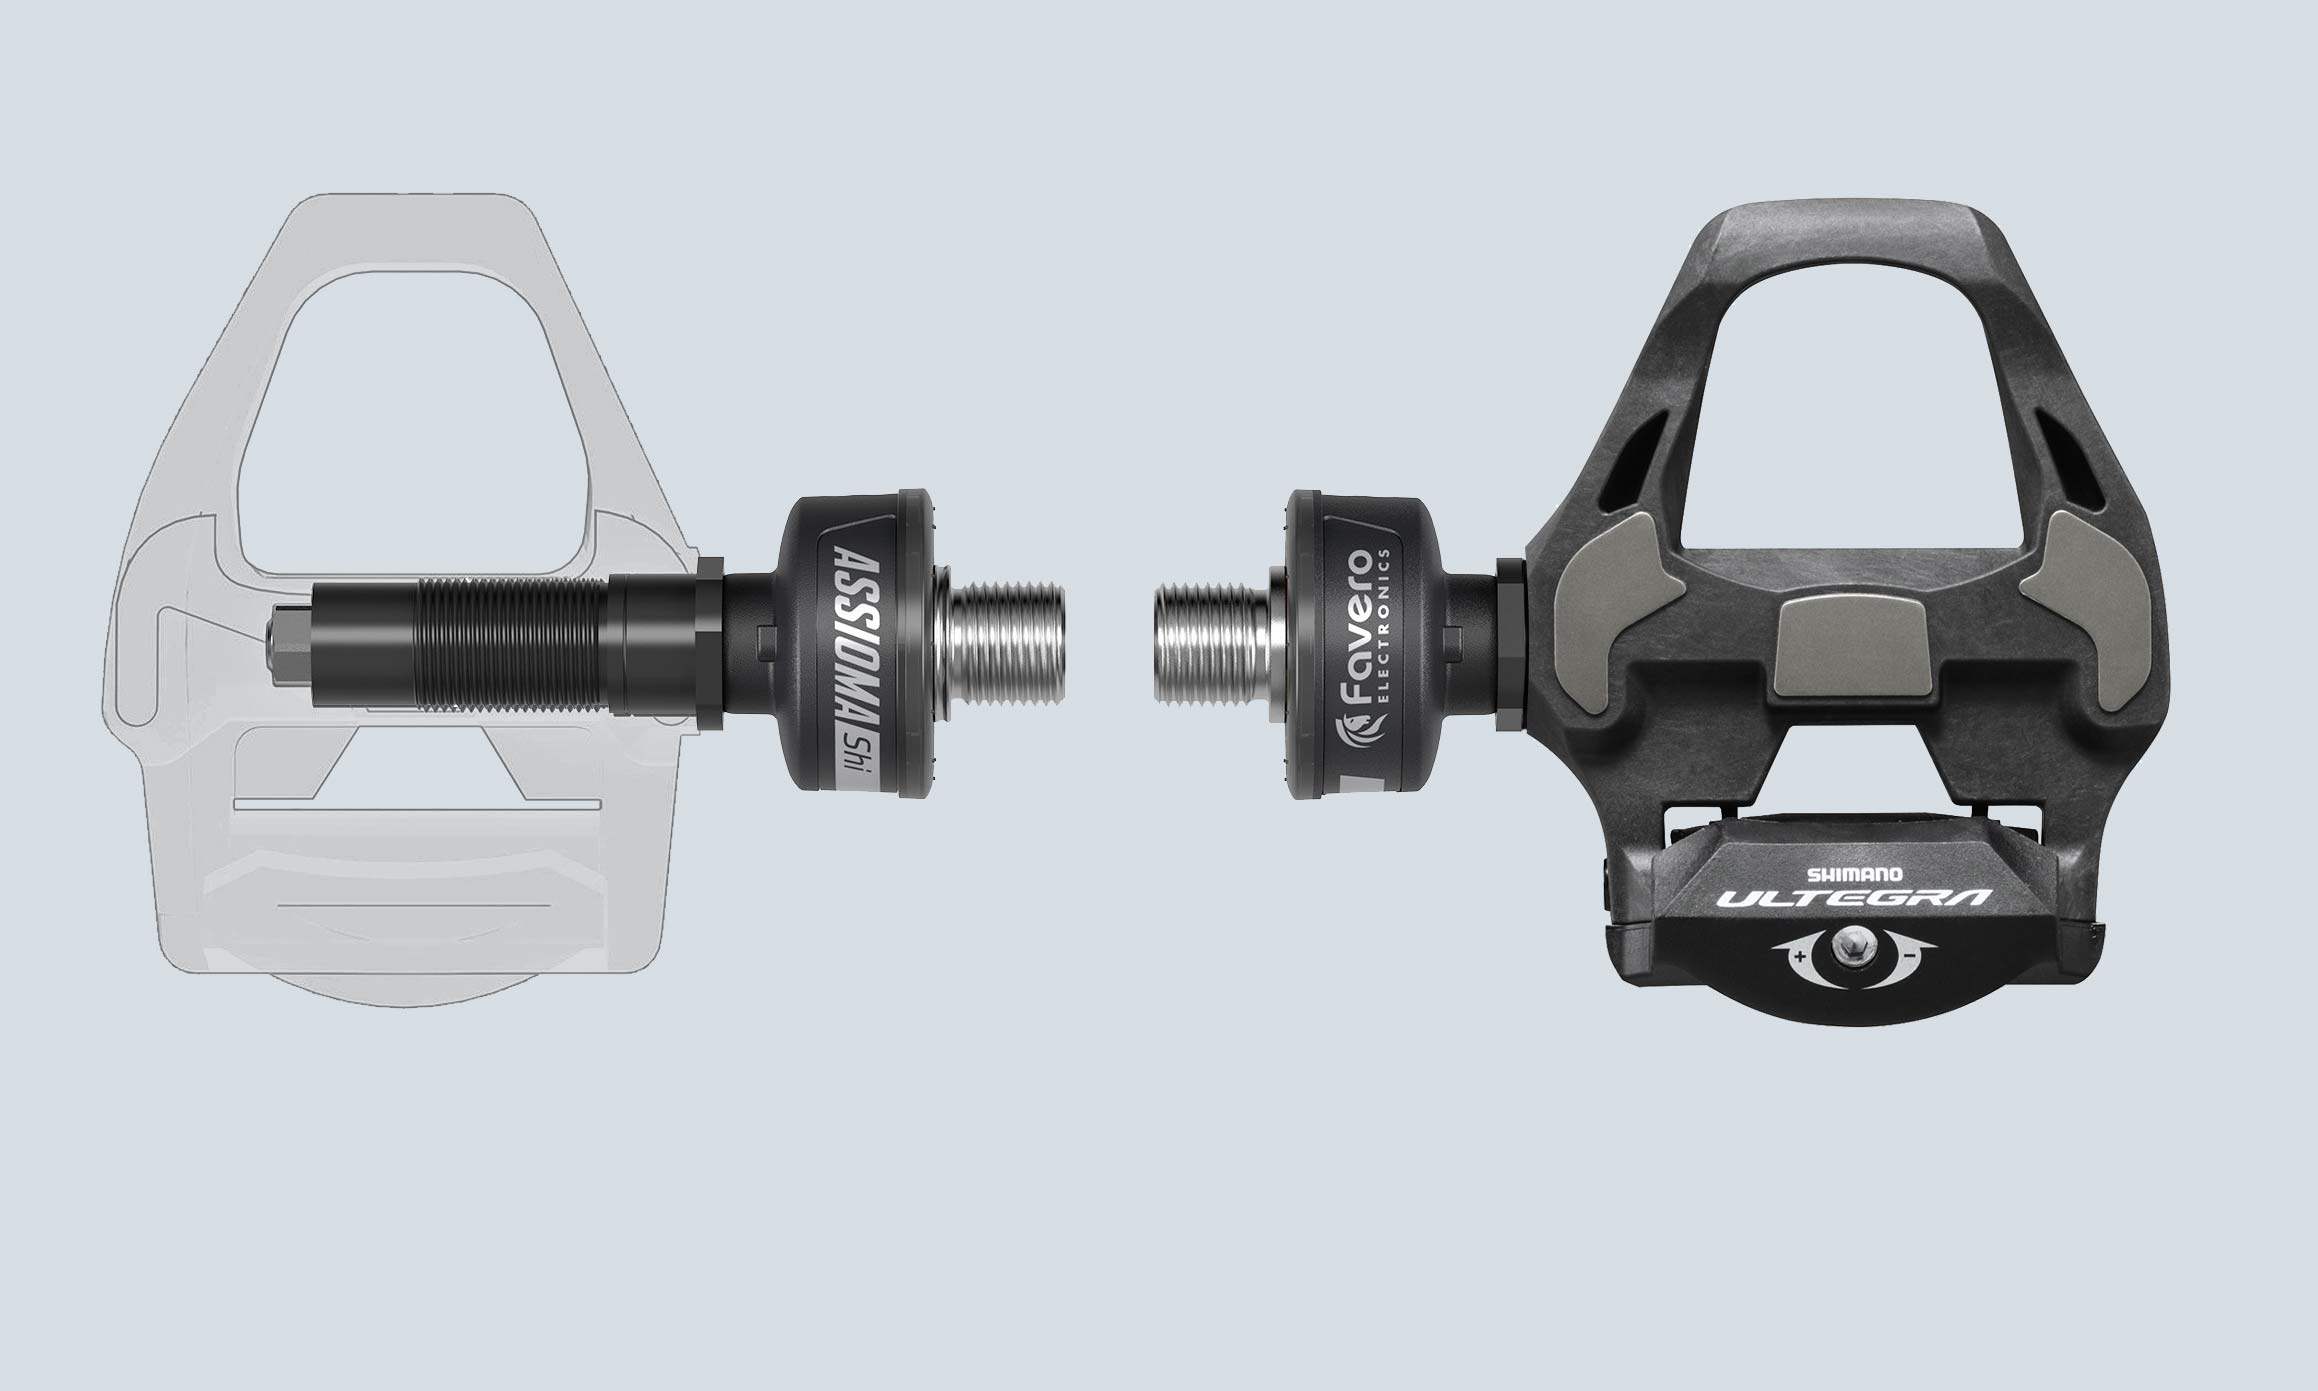 Favero Assioma DUO-Shi Shimano SPD-SL compatible road power meter pedal spindle kit, composite